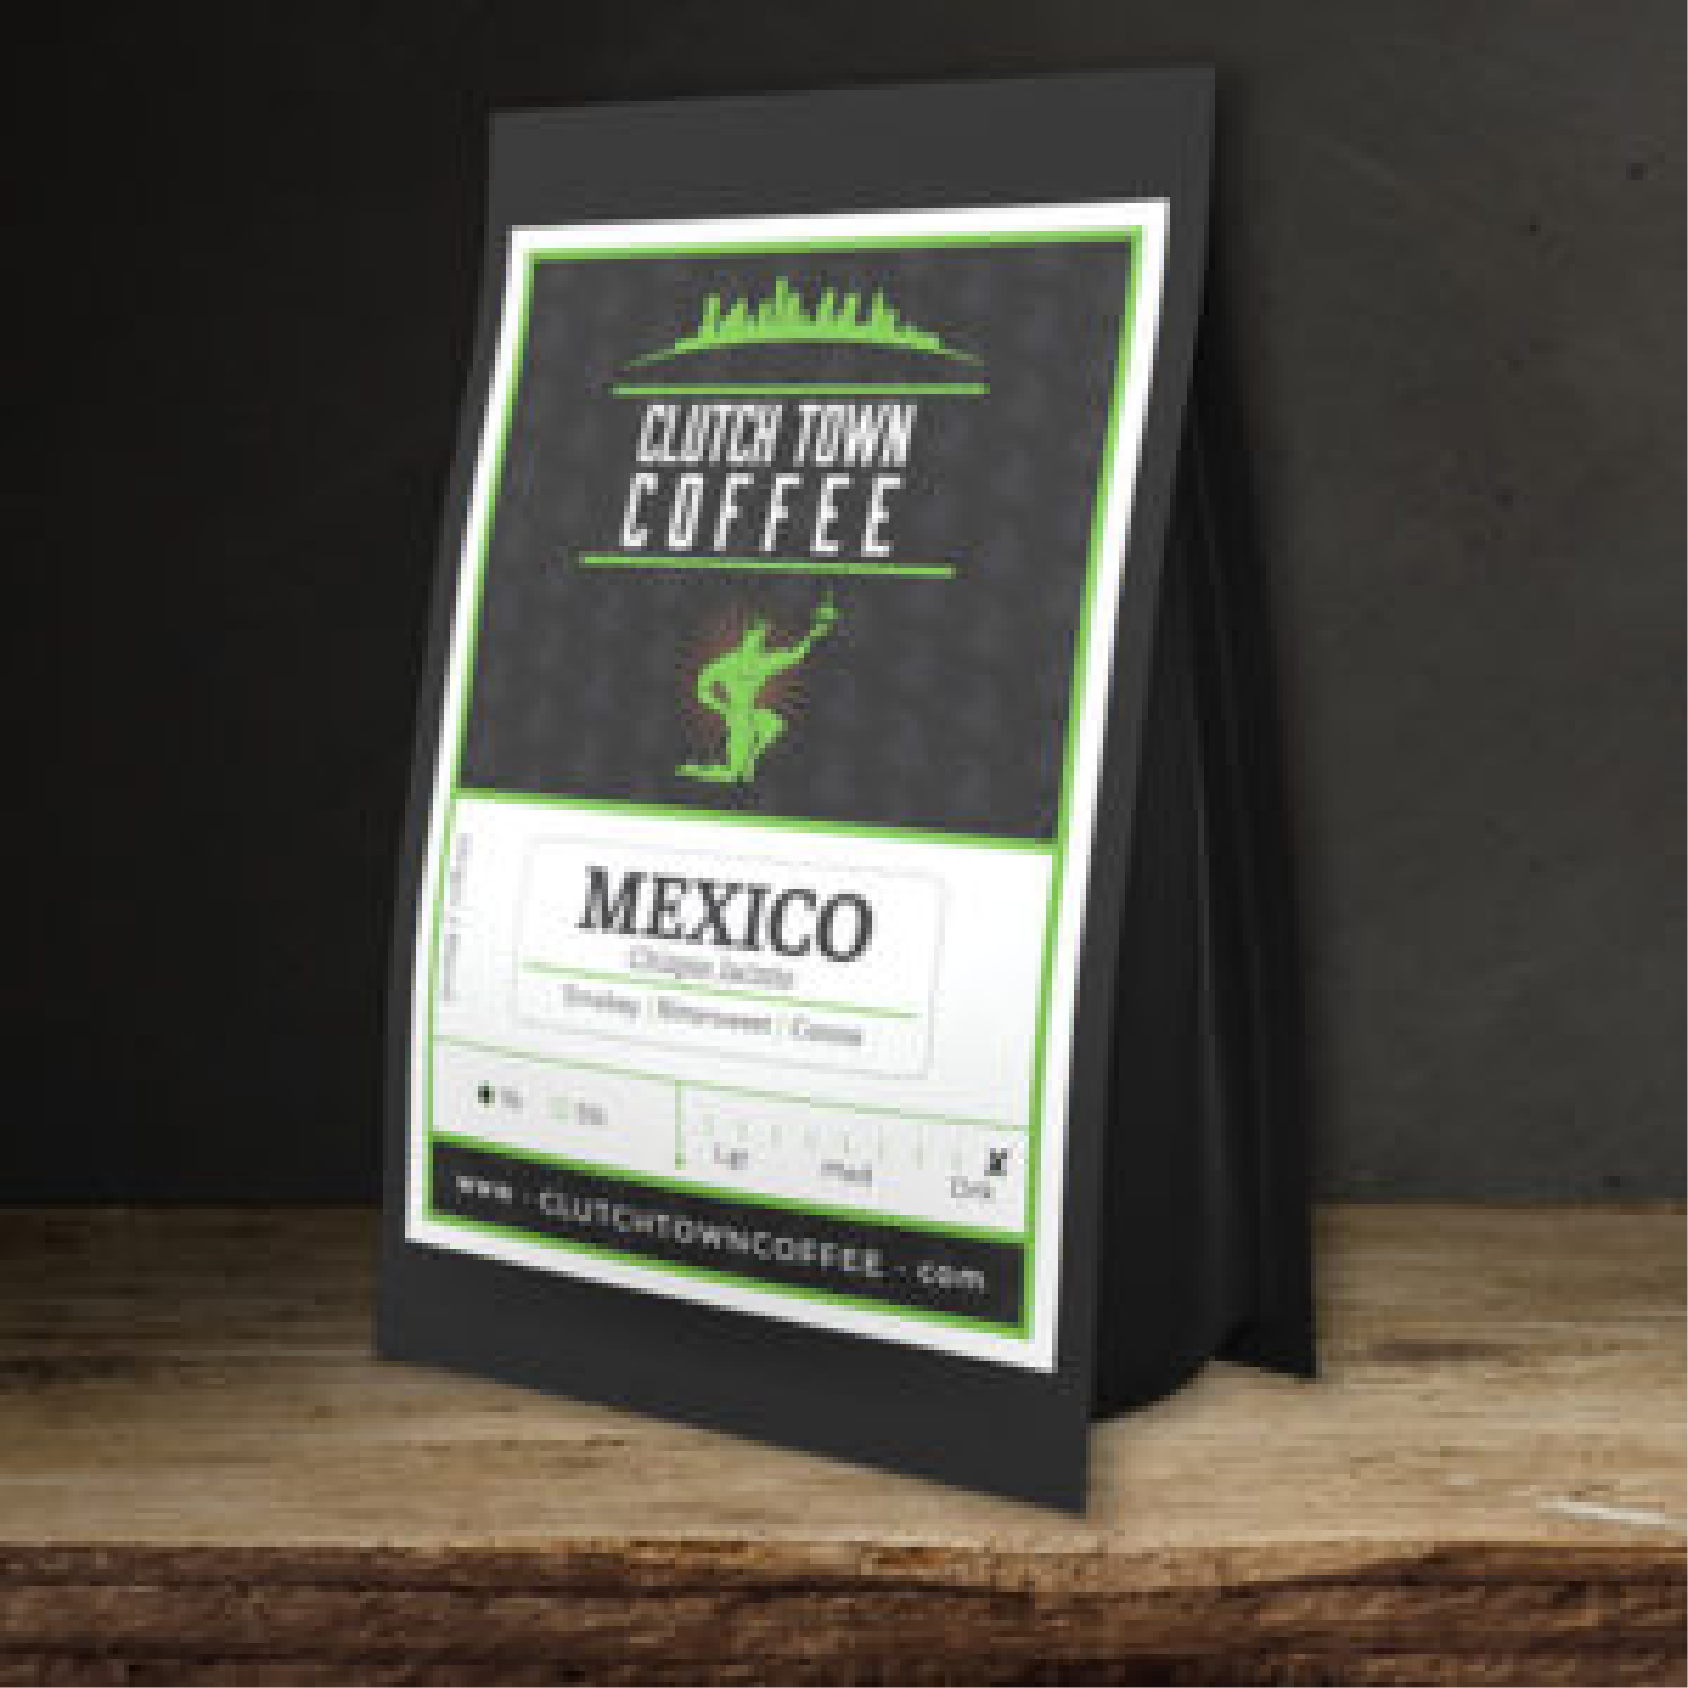 Mexico Chiapas from Clutch Town Coffee